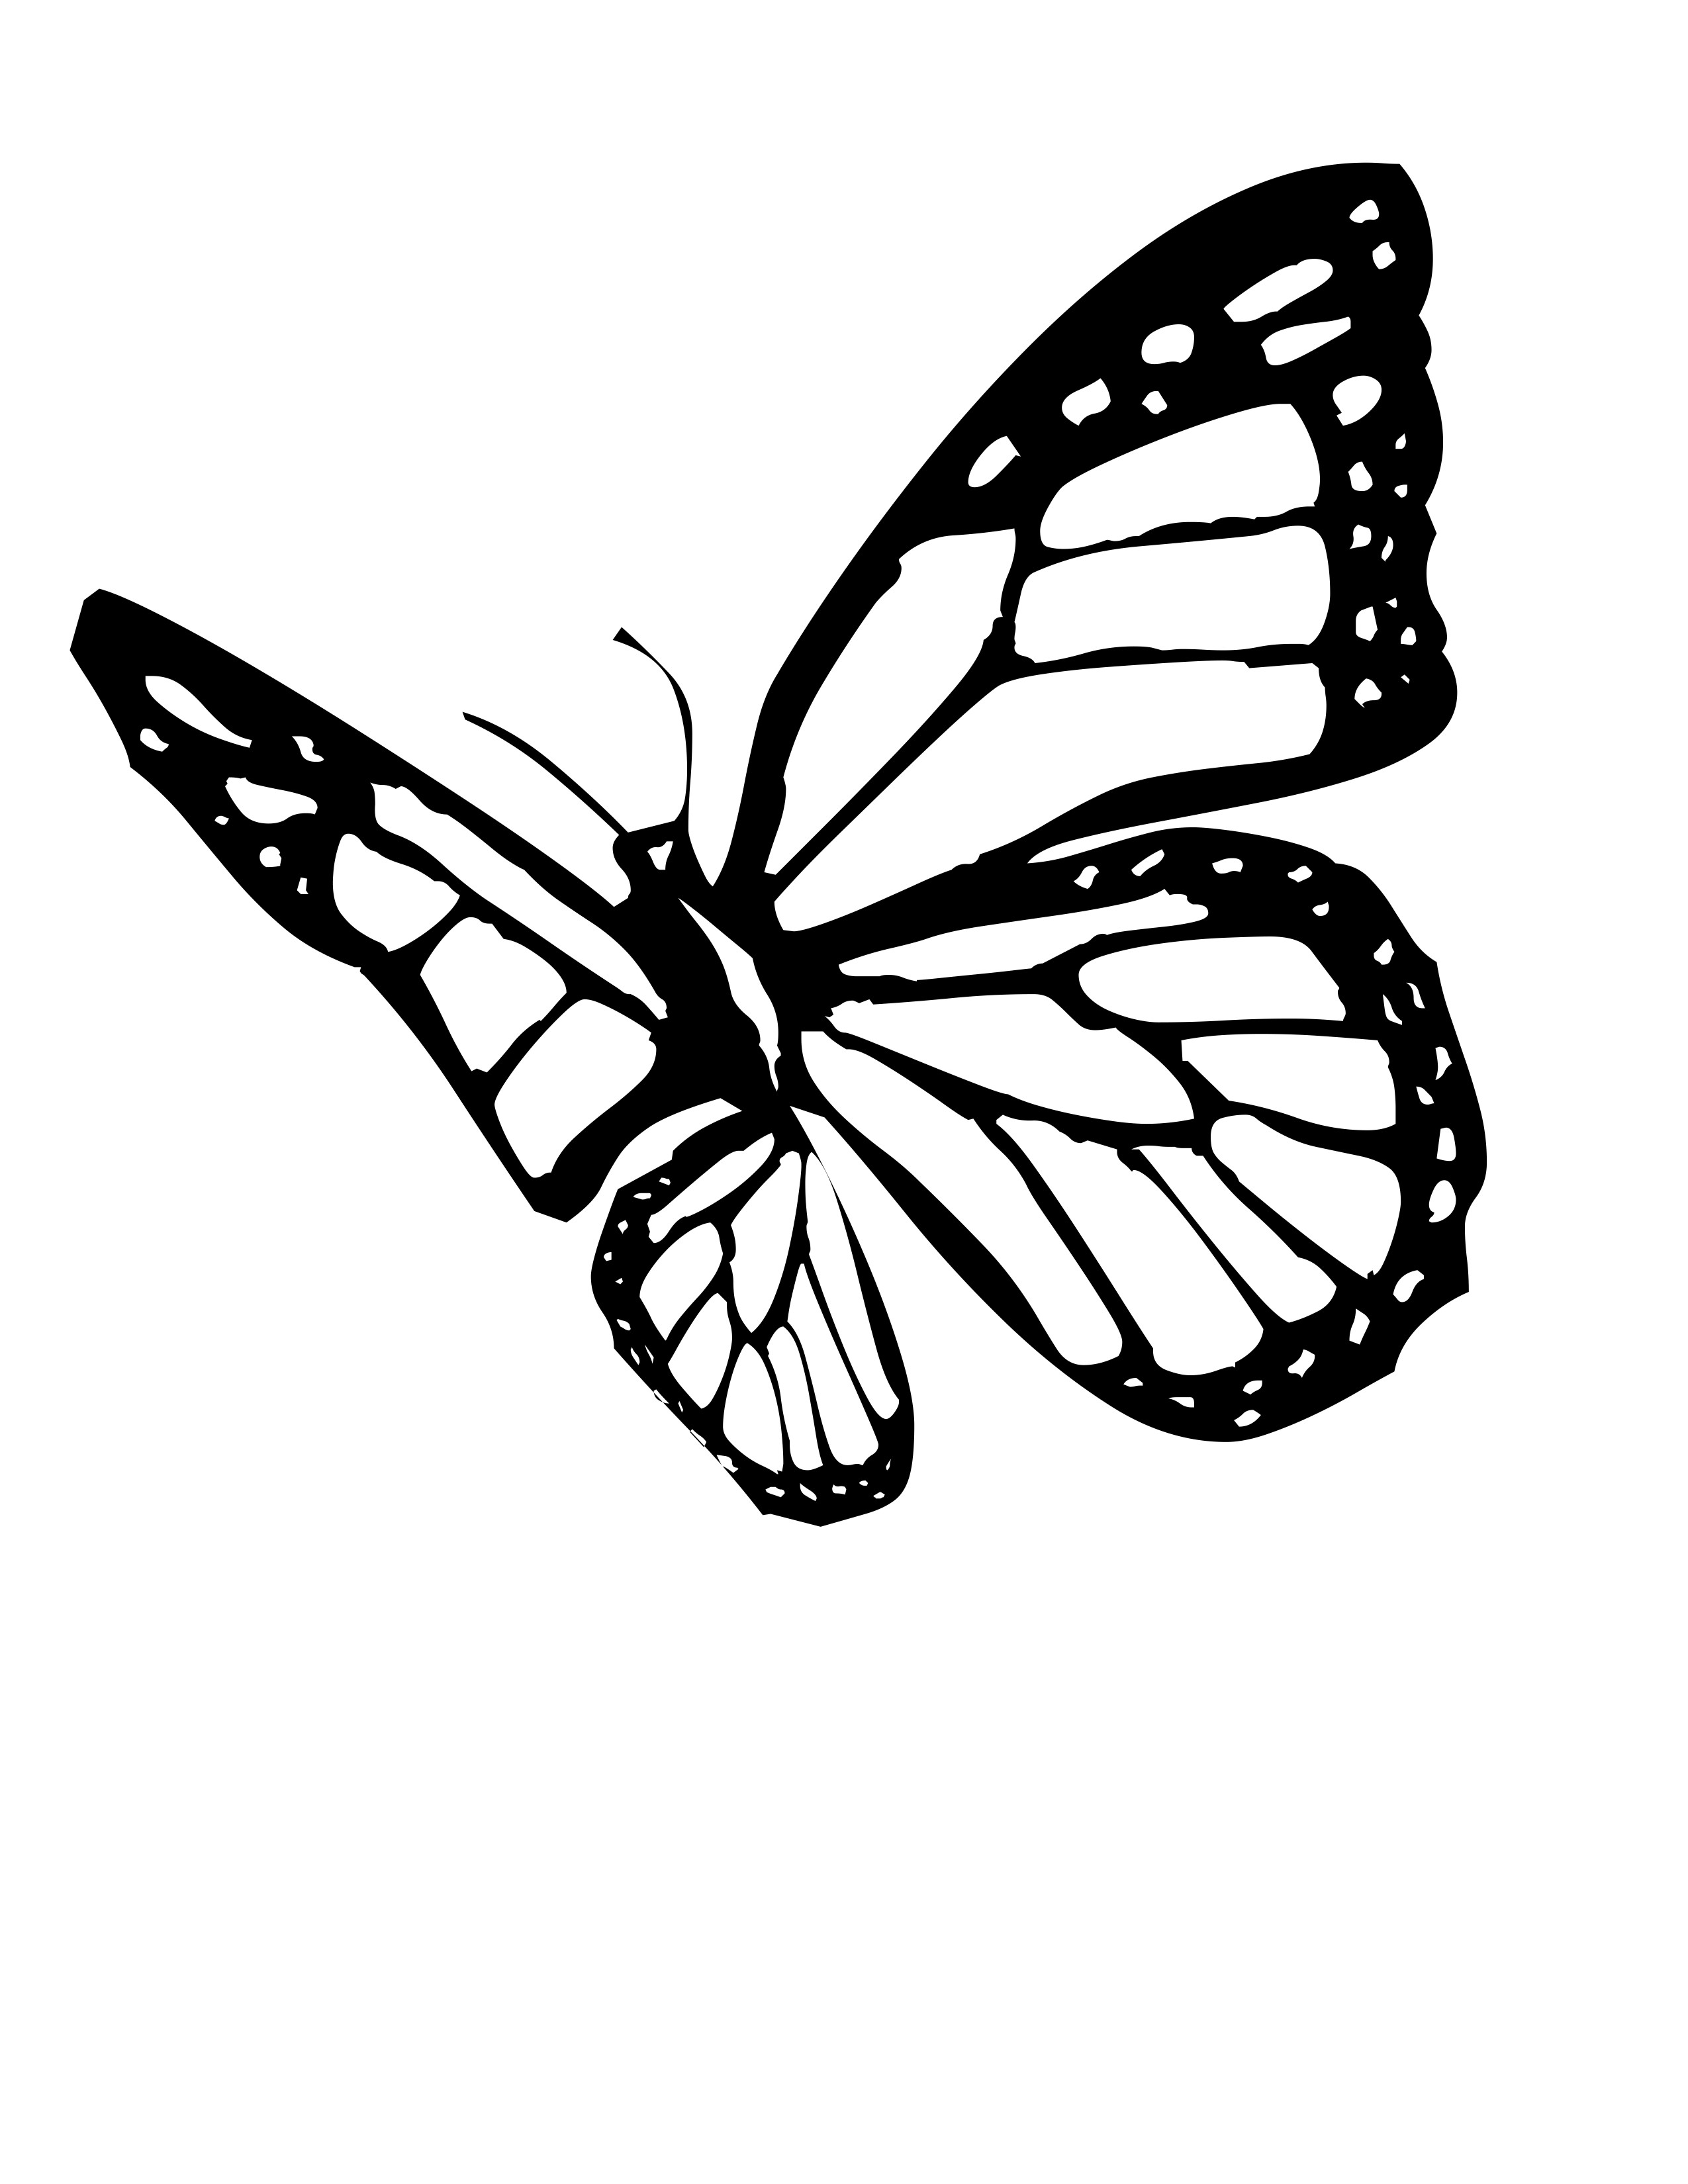 monarch butterfly coloring page monarch butterfly coloring pages to print free coloring monarch page butterfly coloring